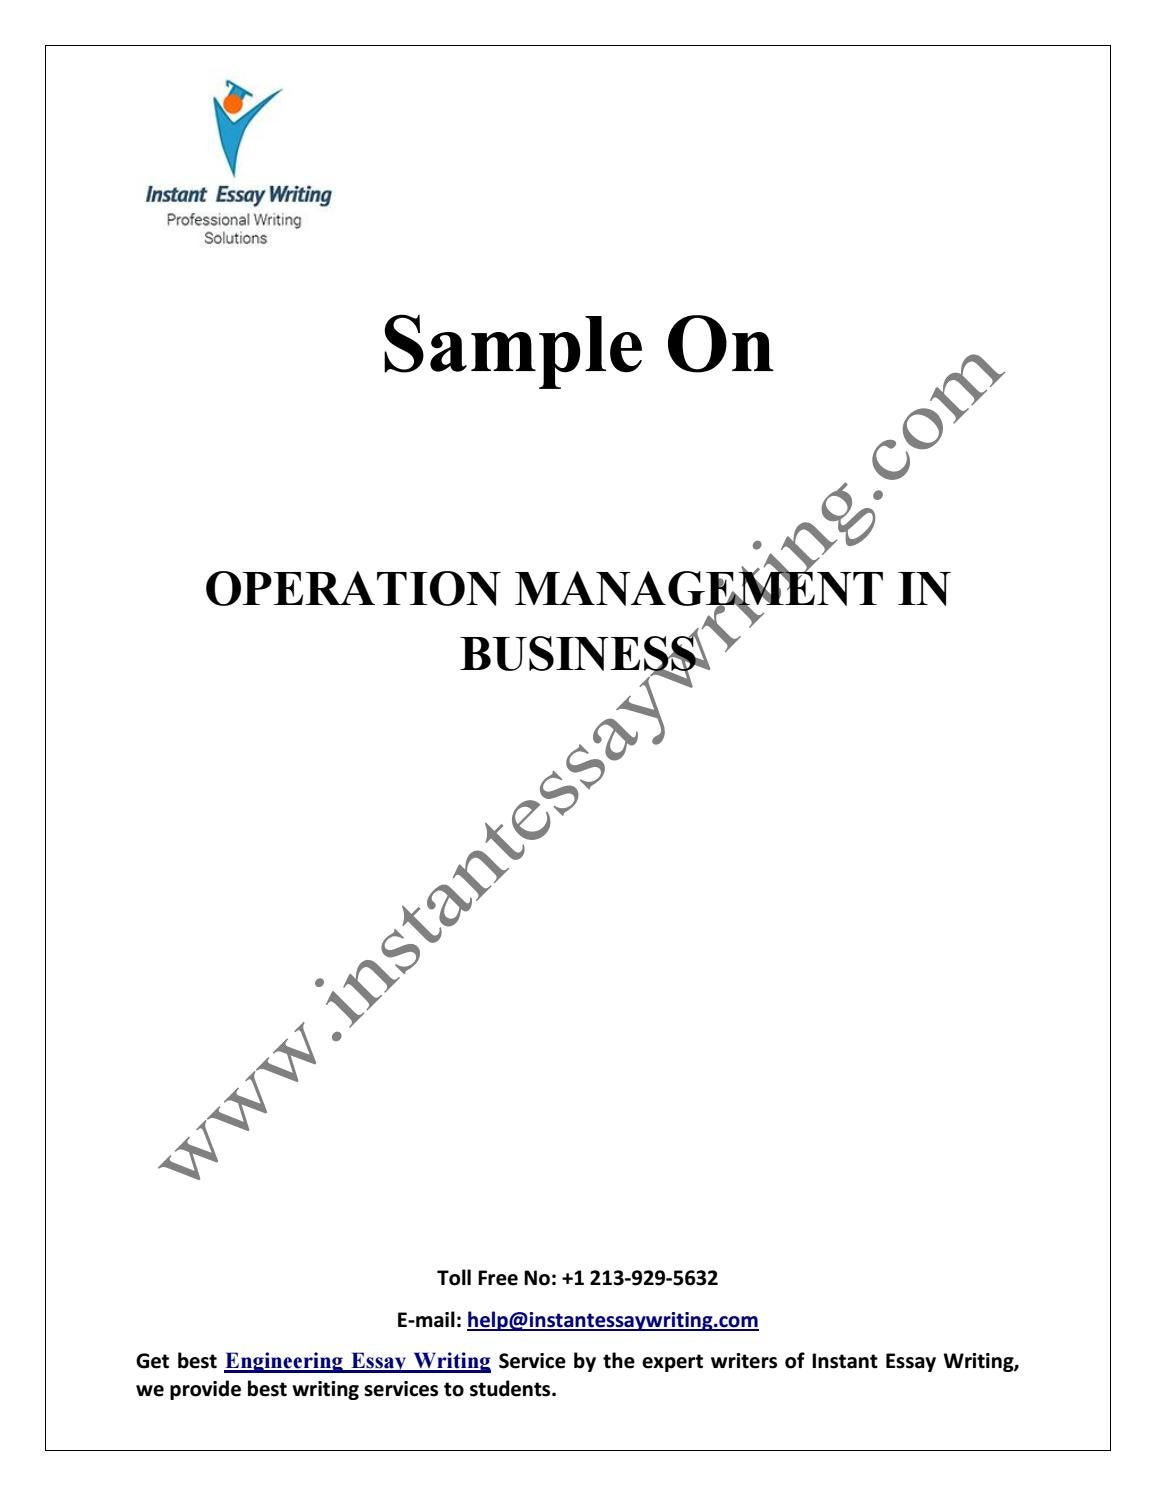 sample on operation management in business by instant essay  sample on operation management in business by instant essay writing by instant essay writing issuu